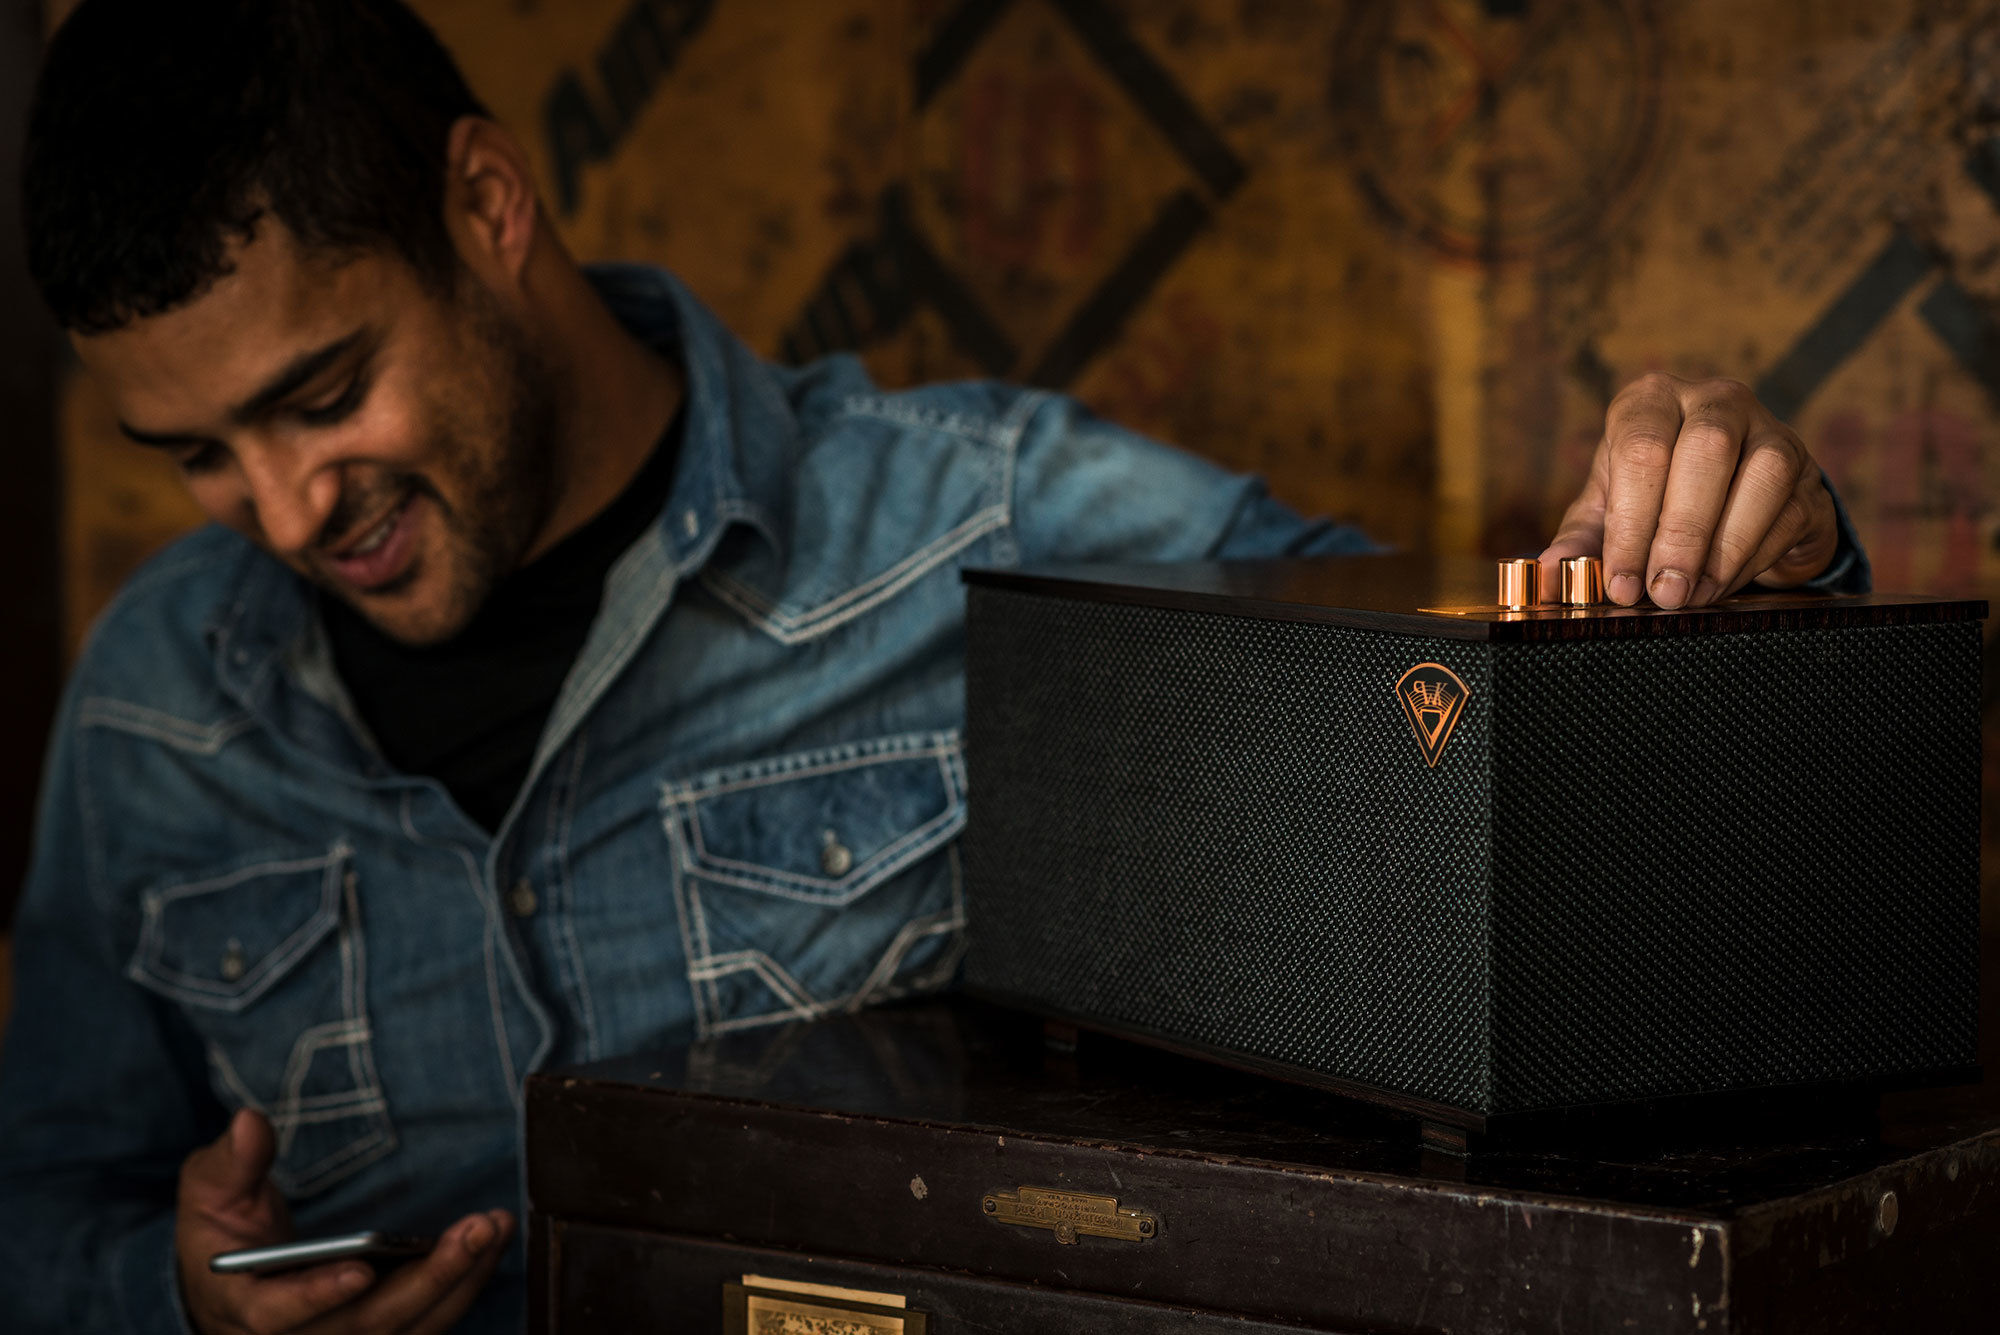 Man checking cell phone and resting hand on Klipsch speaker